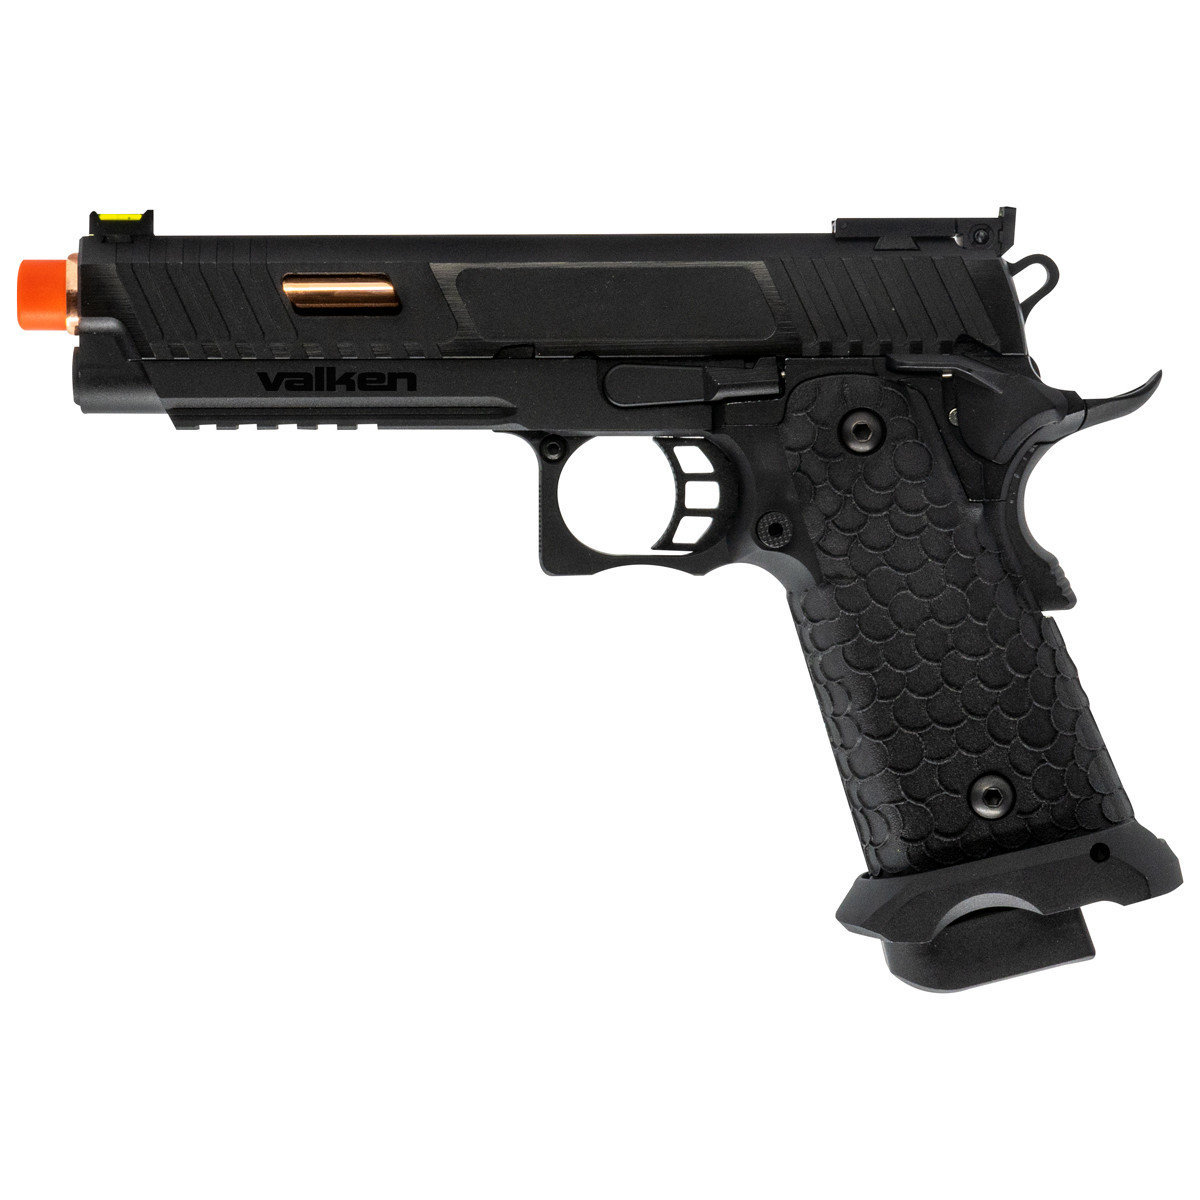 View larger image of Valken BY HICAPA CO2 Blowback Airsoft Pistol